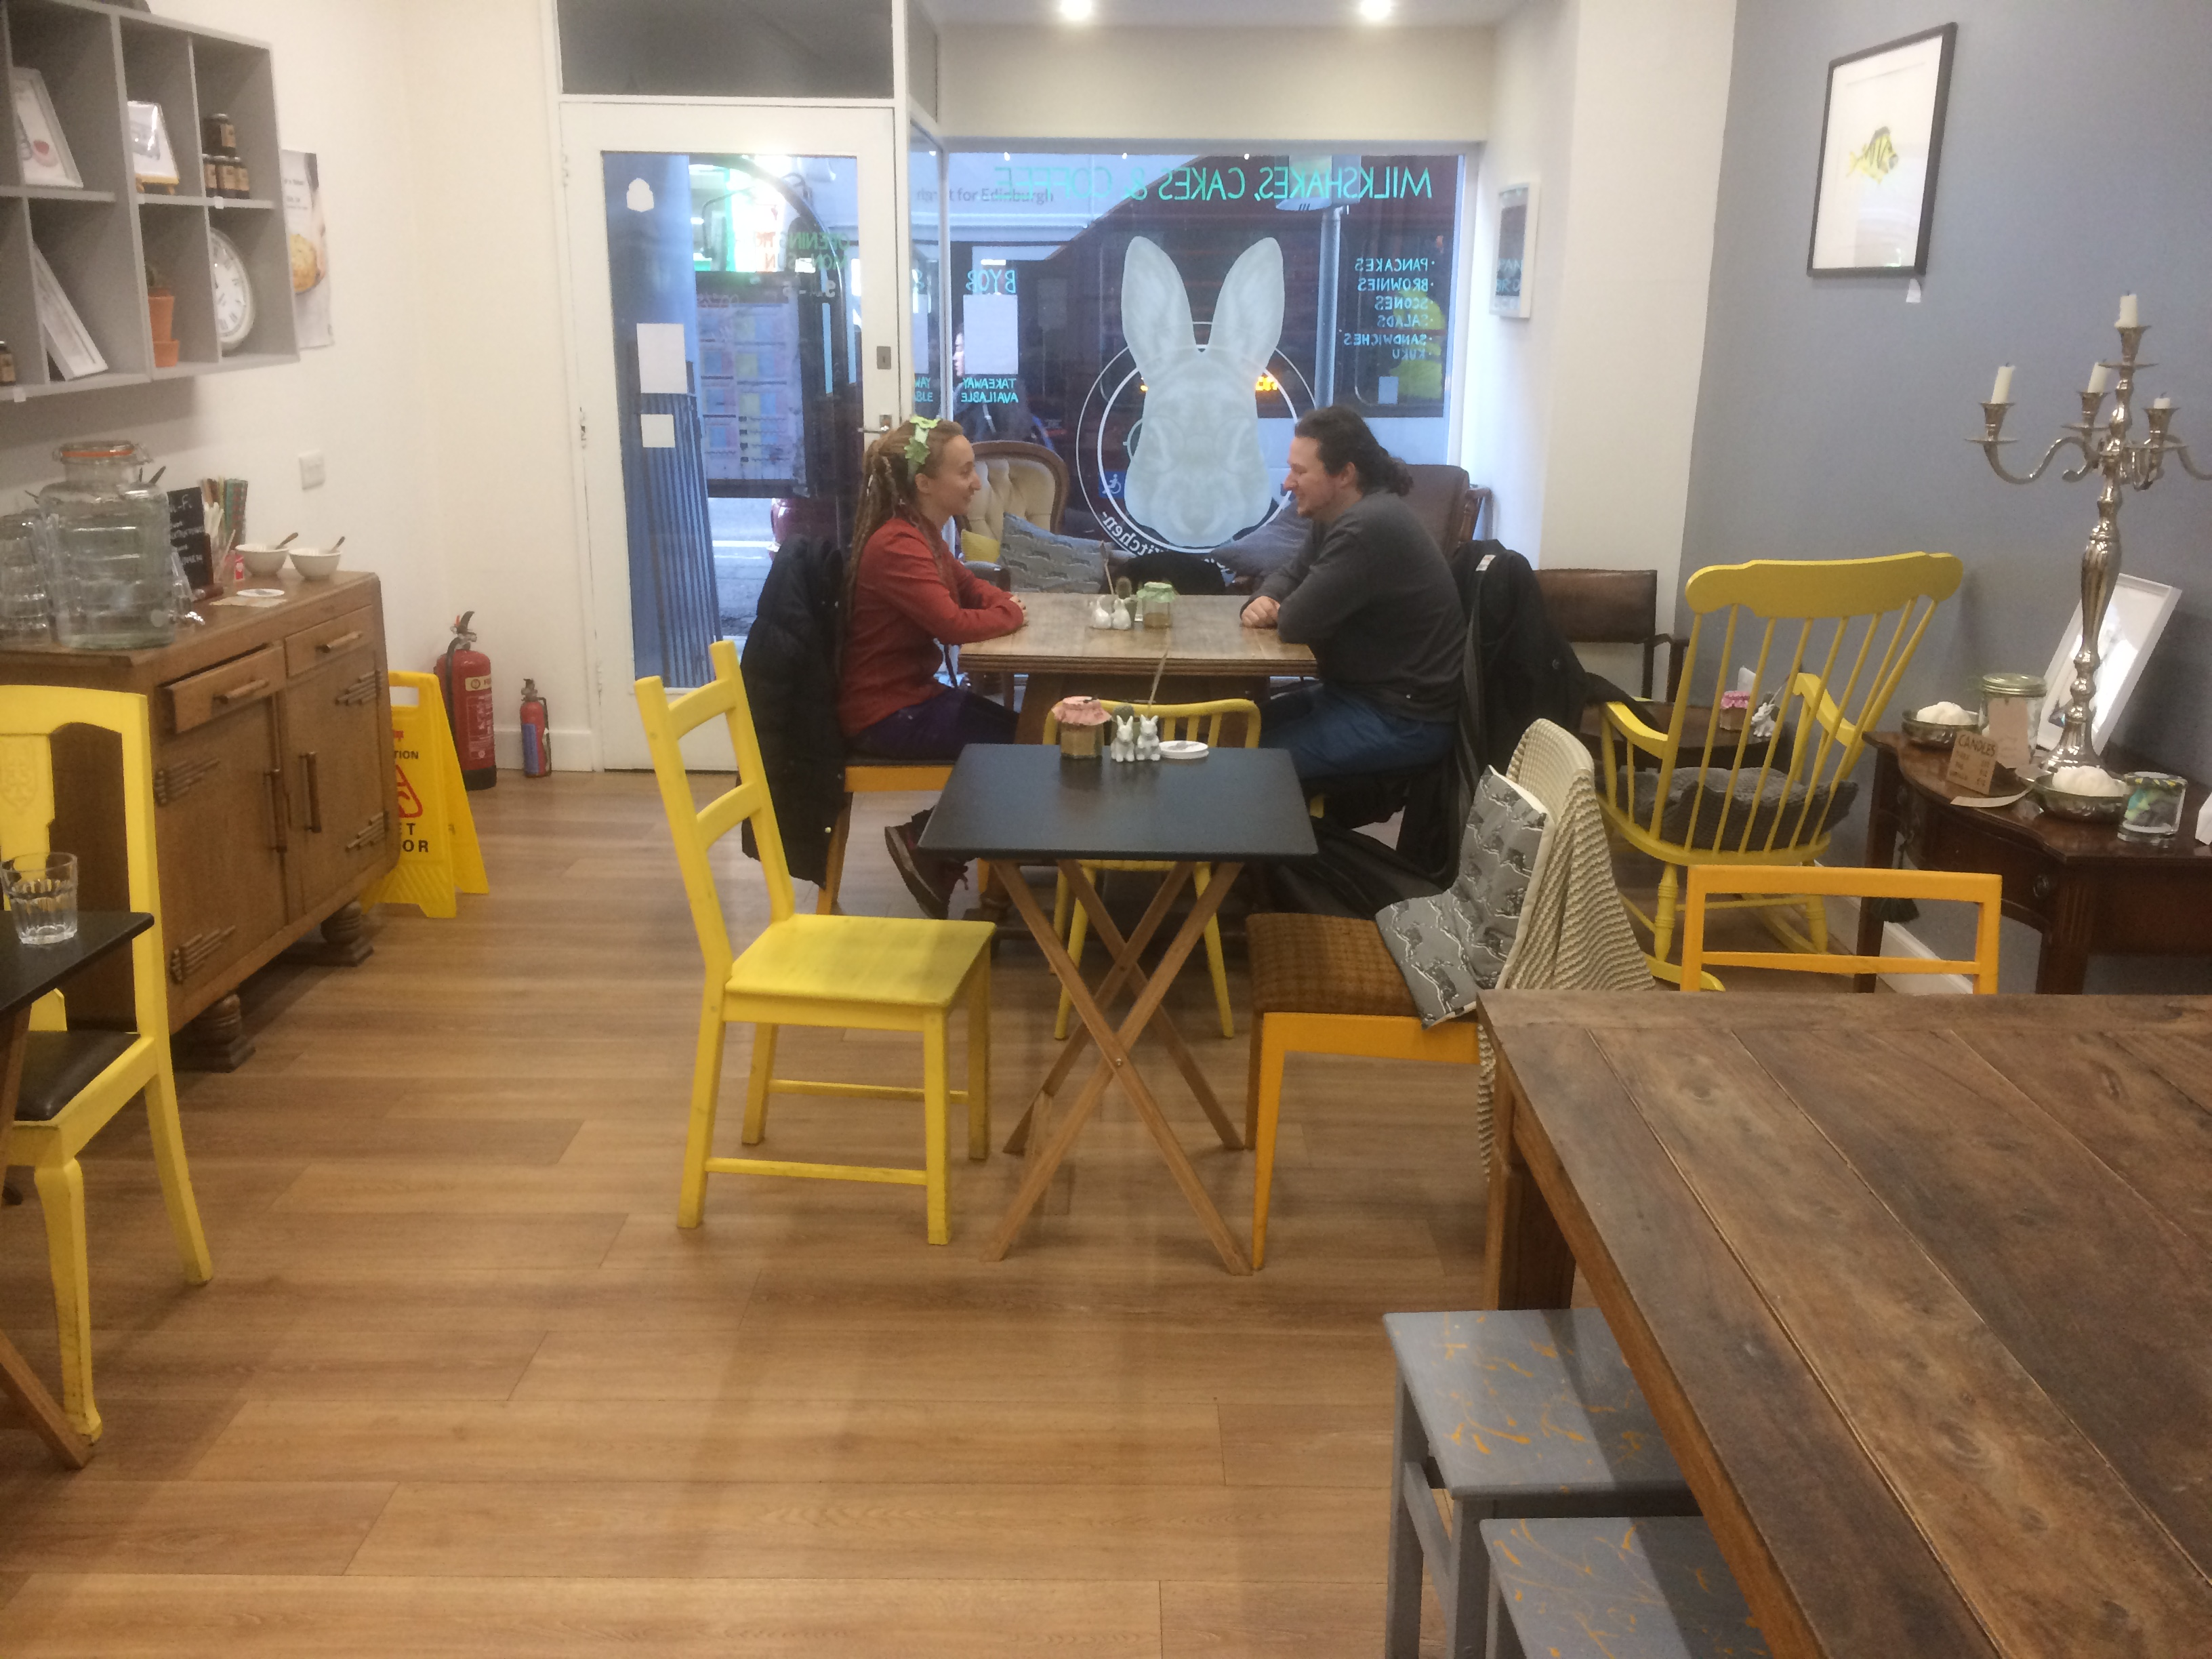 A cafe interior with a wooden floor, yellow chairs, and two people at a table